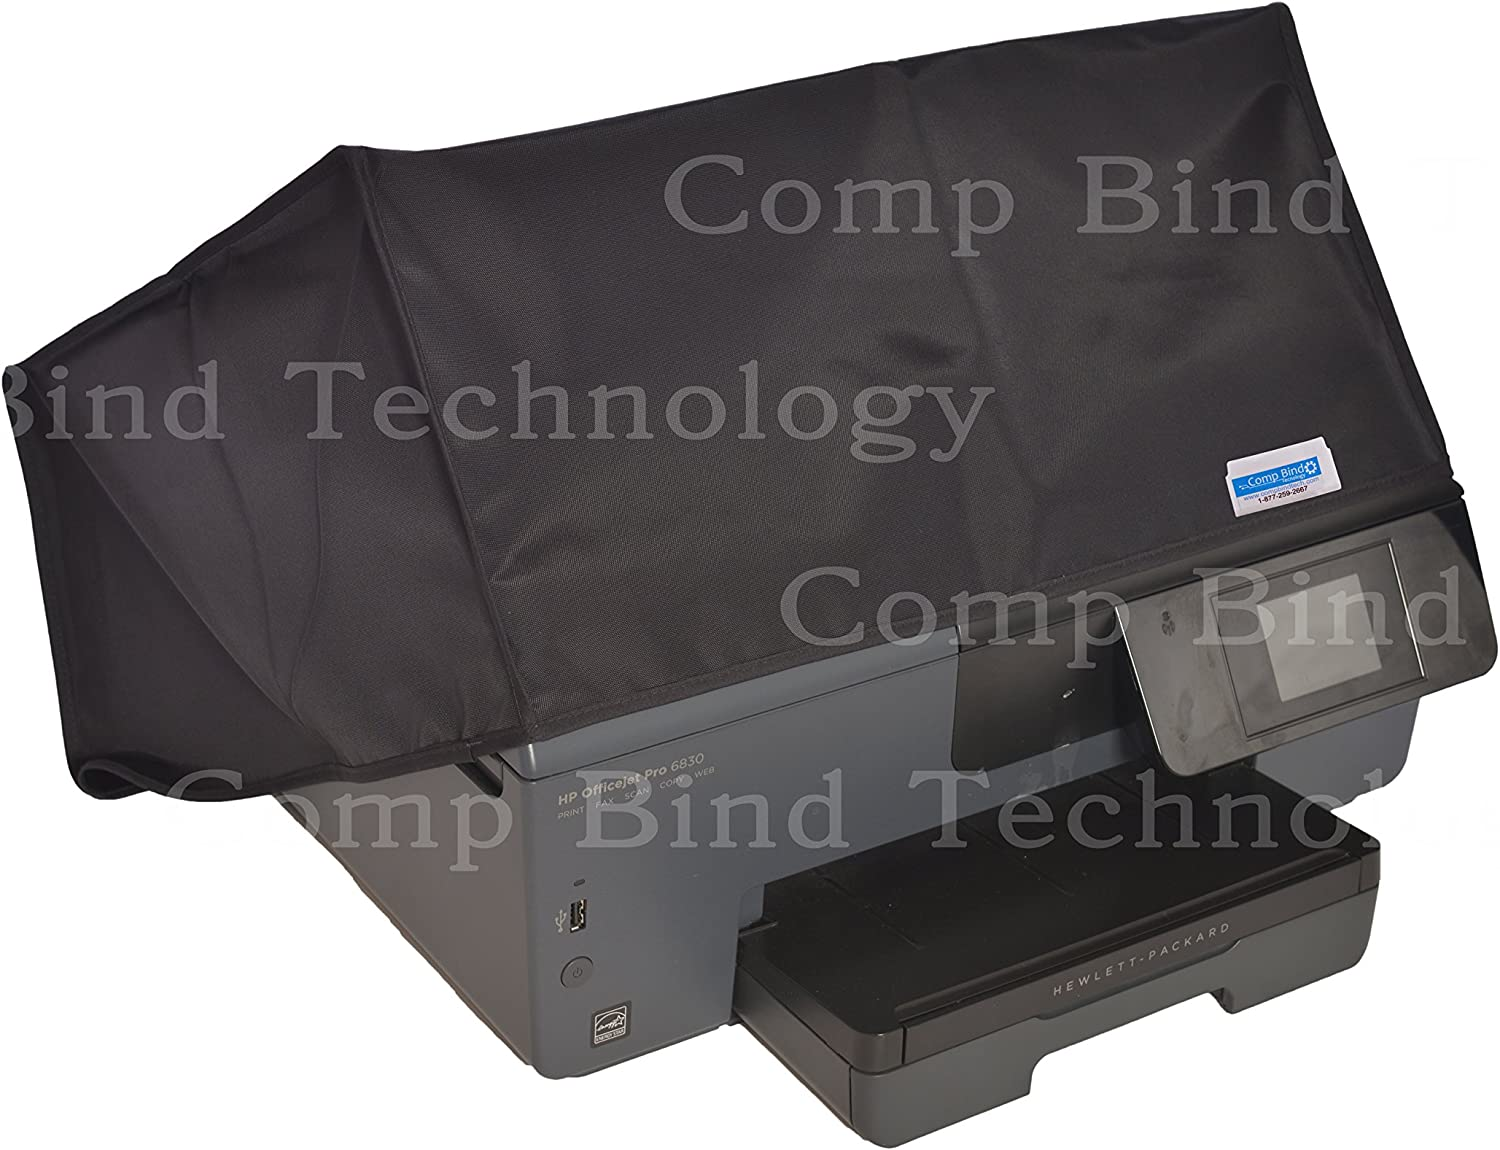 Comp Bind Technology Dust Cover Compatible with HP Envy Photo 7855 All-in-One Printer, Black Nylon Anti-Static Cover, Dimensions 17.8''W x 16.2''D x 7.5''H